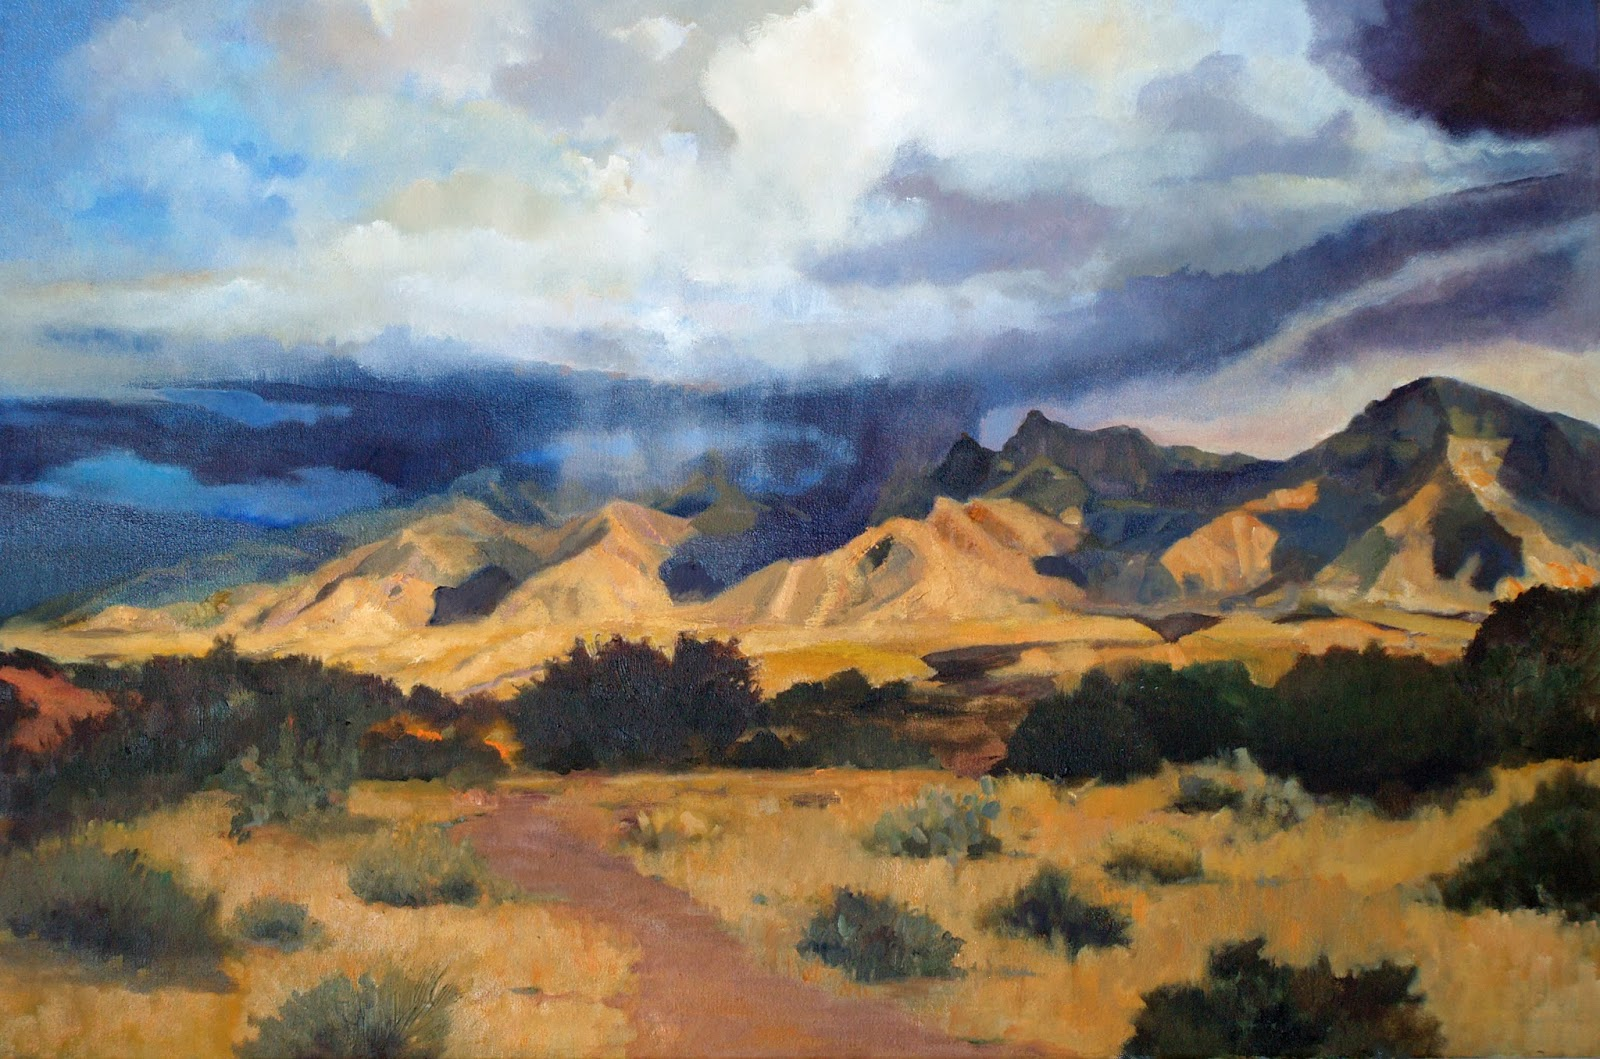 1600x1059 Painting, The Constant Companion Desert Mountain View Studio Painting - Mountain View Painting